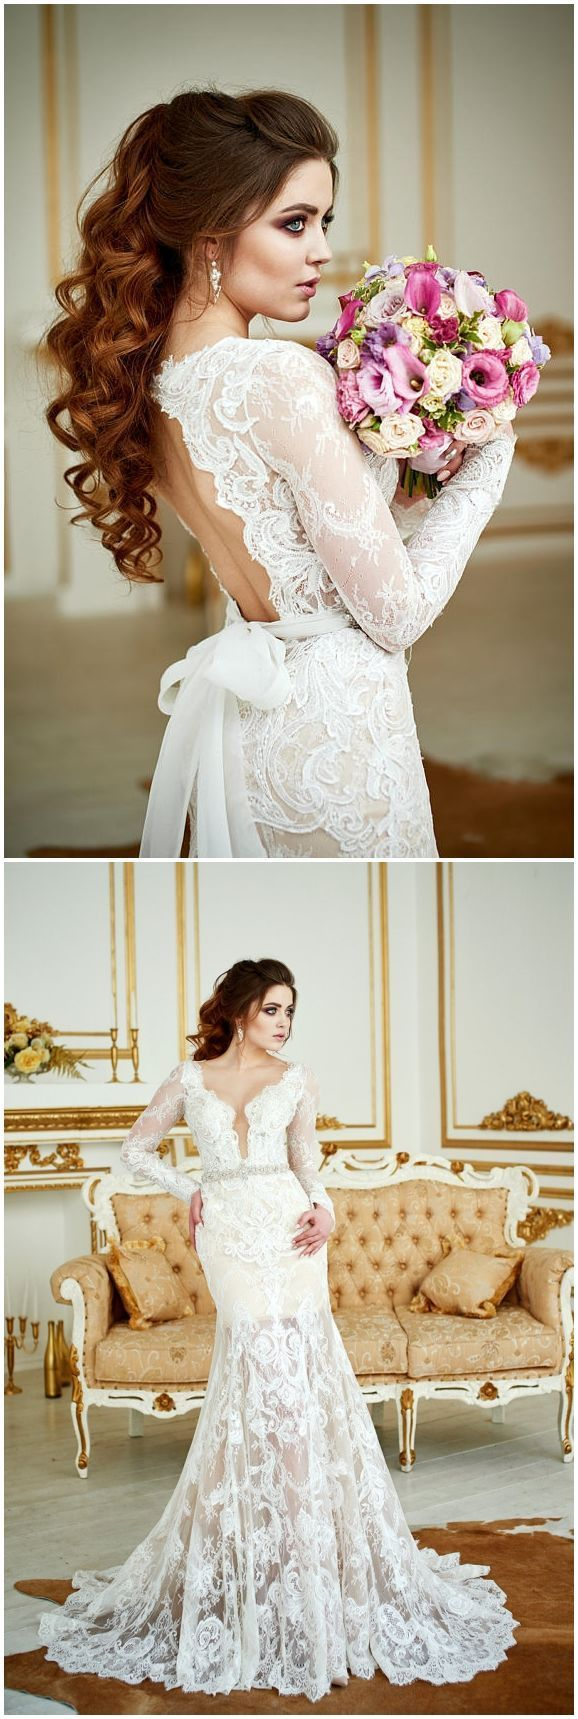 Wedding dress renaissance lace wedding dress bohemian wedding